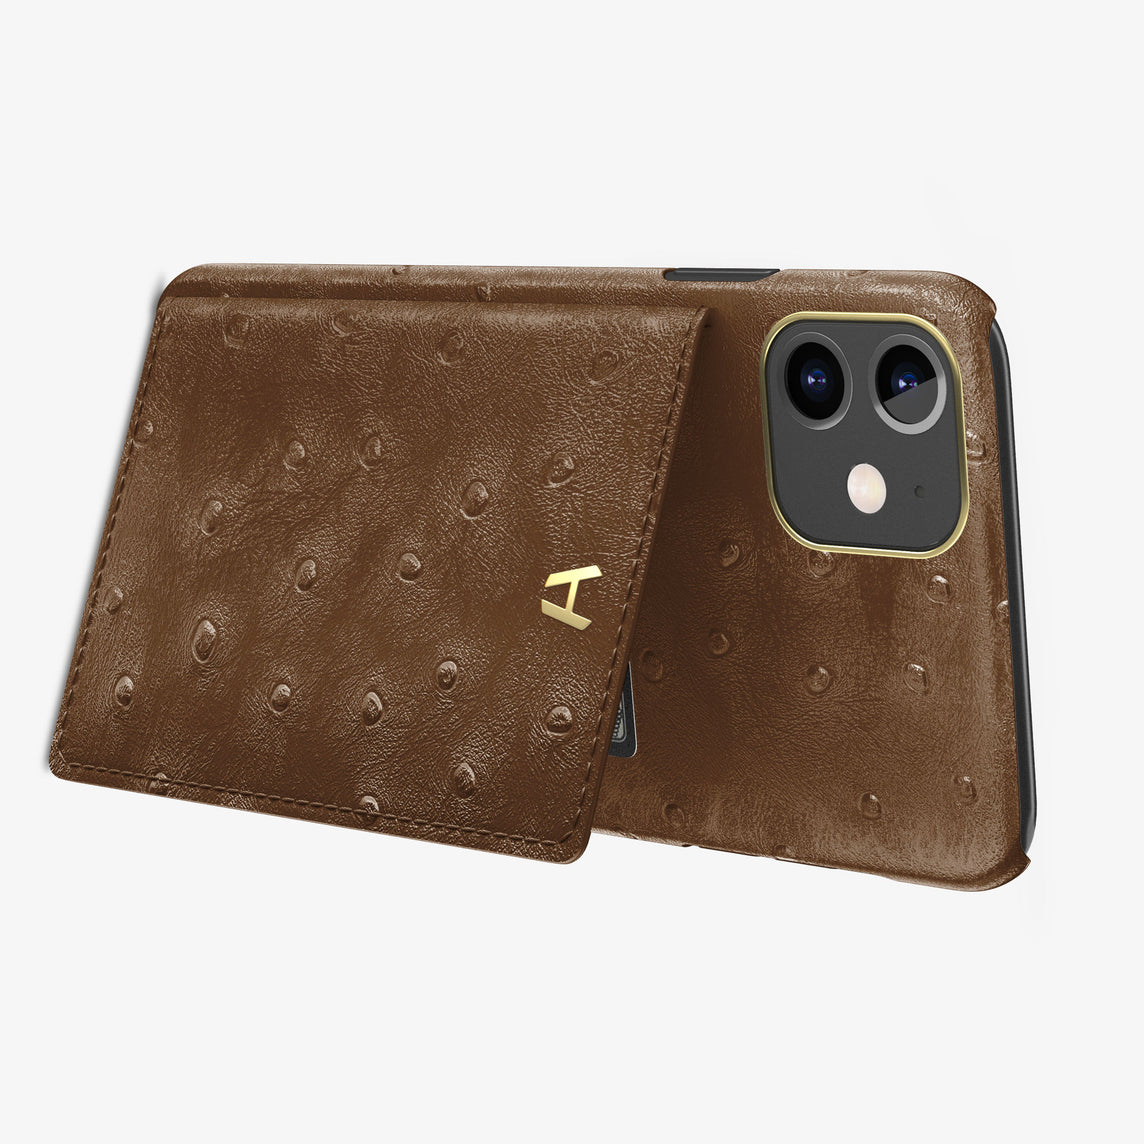 Ostrich Card Holder Flap Case iPhone 11 | Tobacco - Yellow Gold